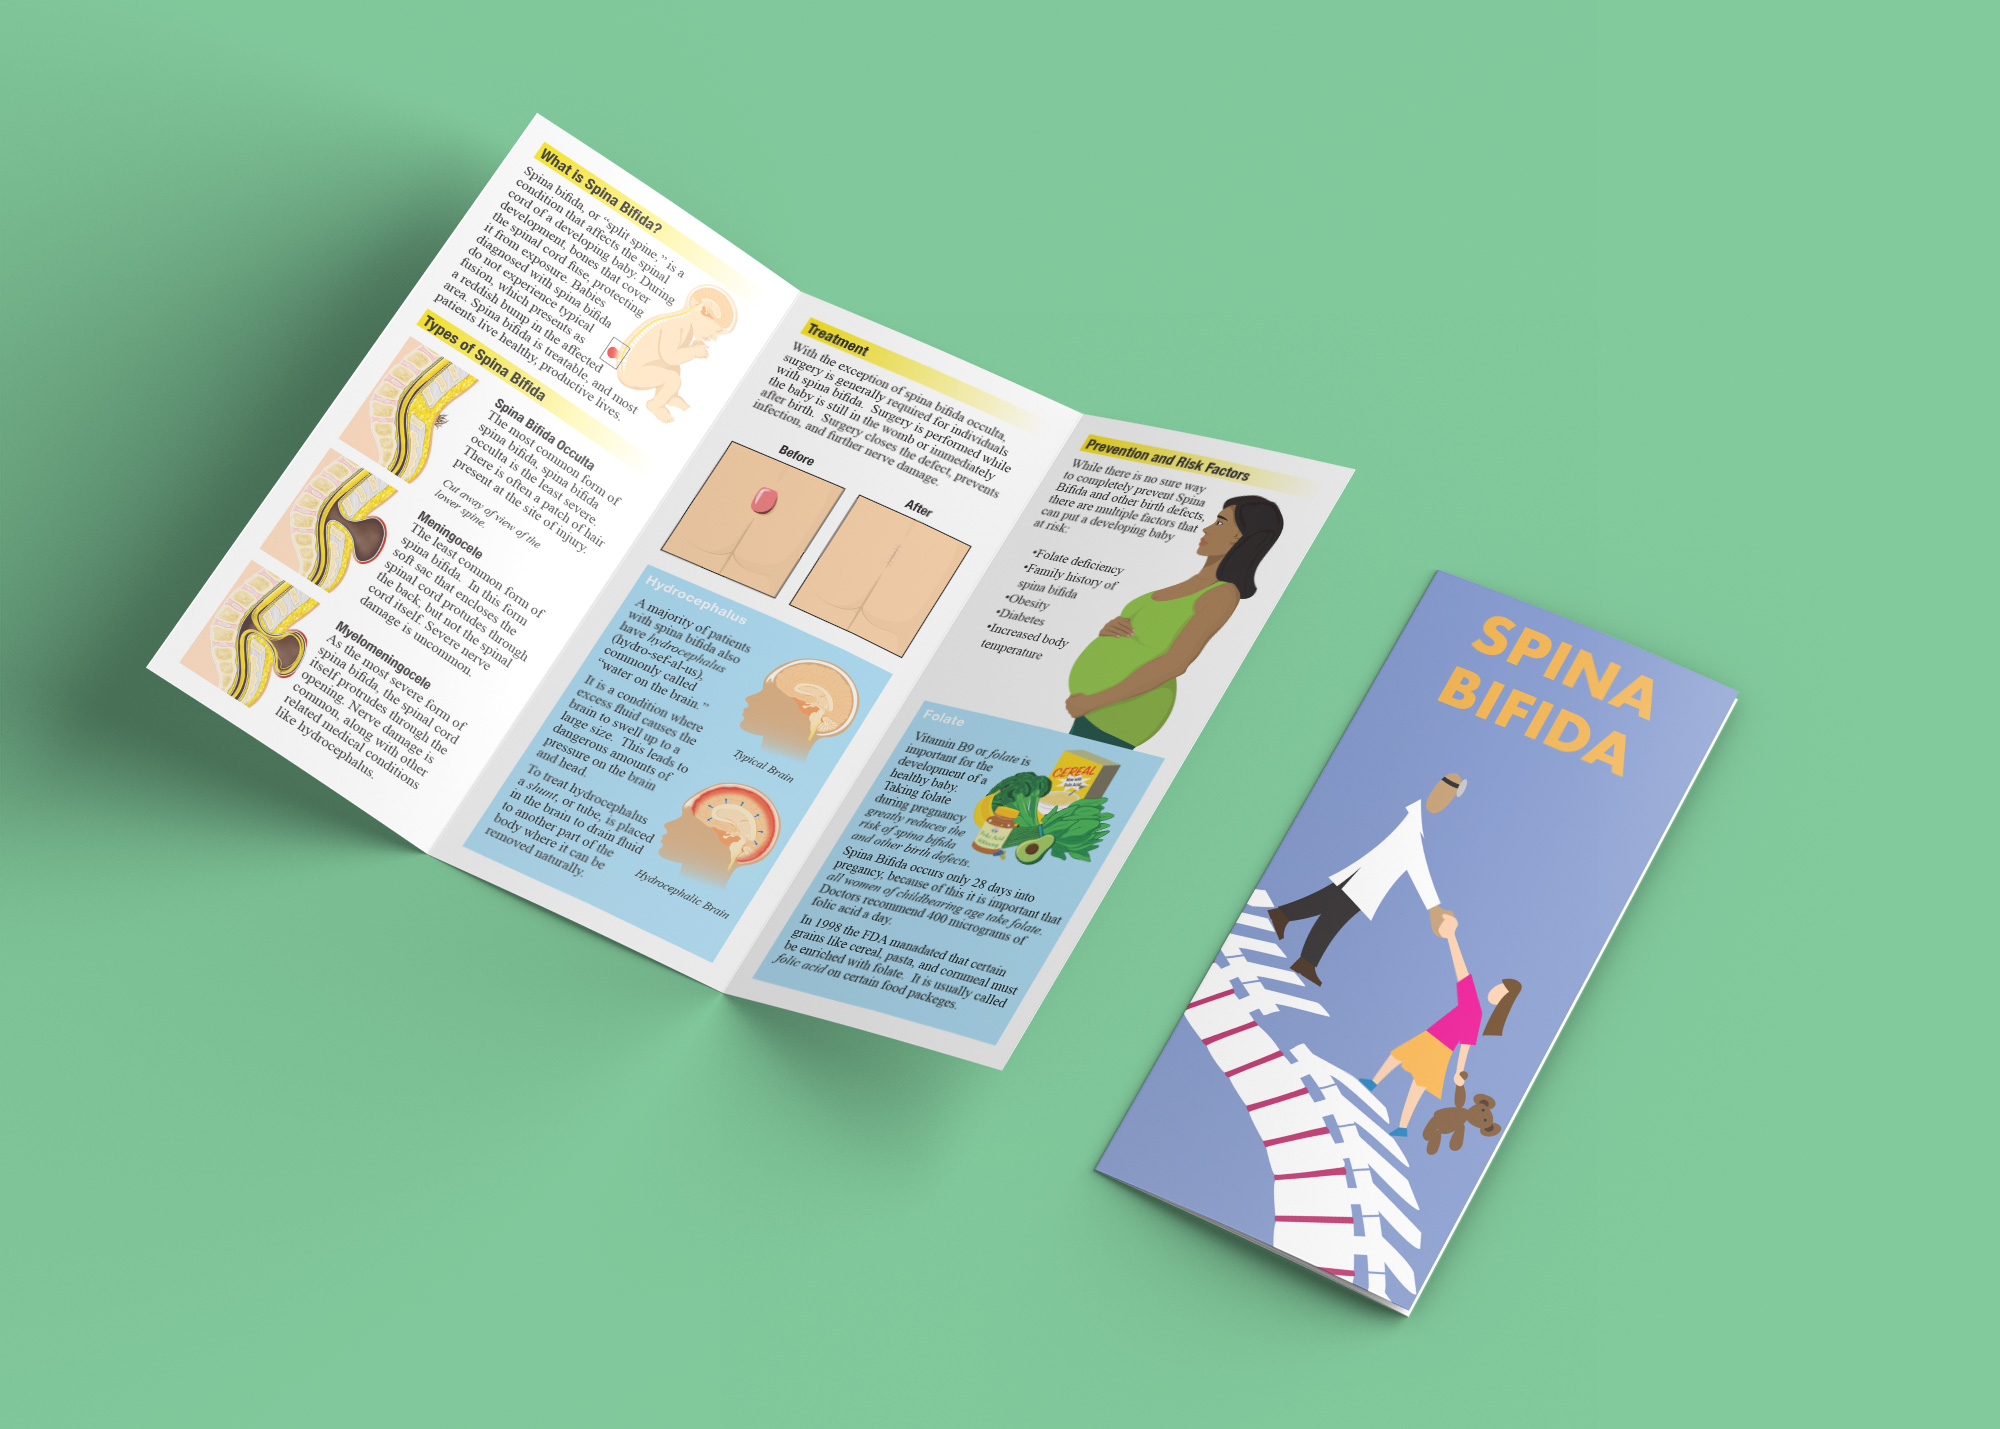 Spina Bifida Brochure